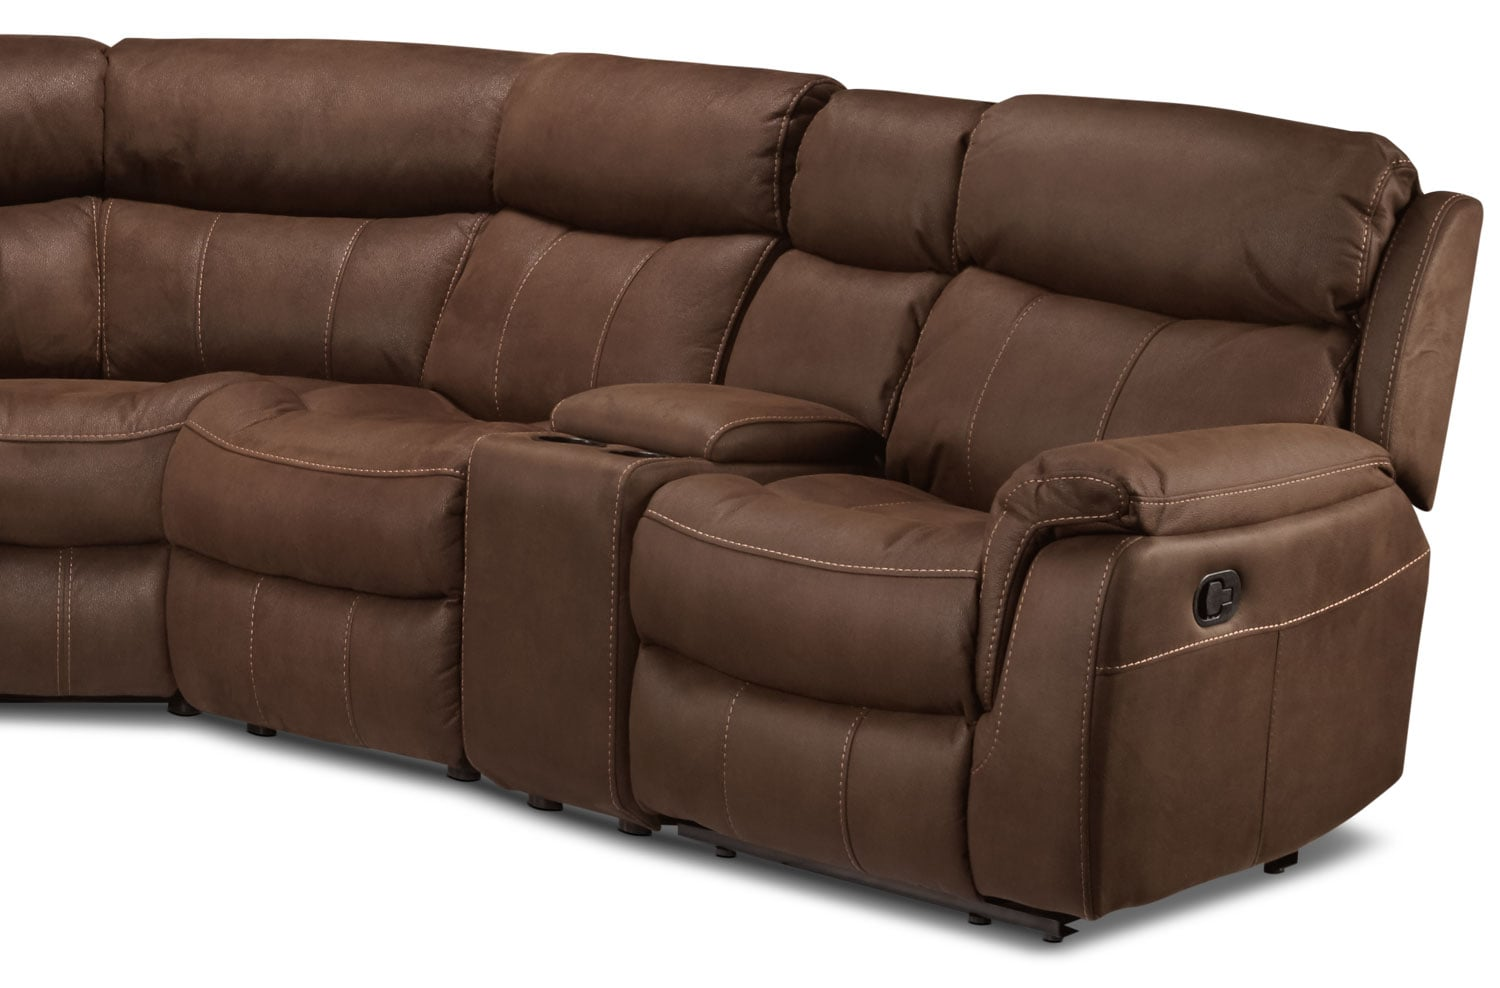 Vaquero 7 piece reclining sectional saddle brown leon39s for 7 piece sectional sofas